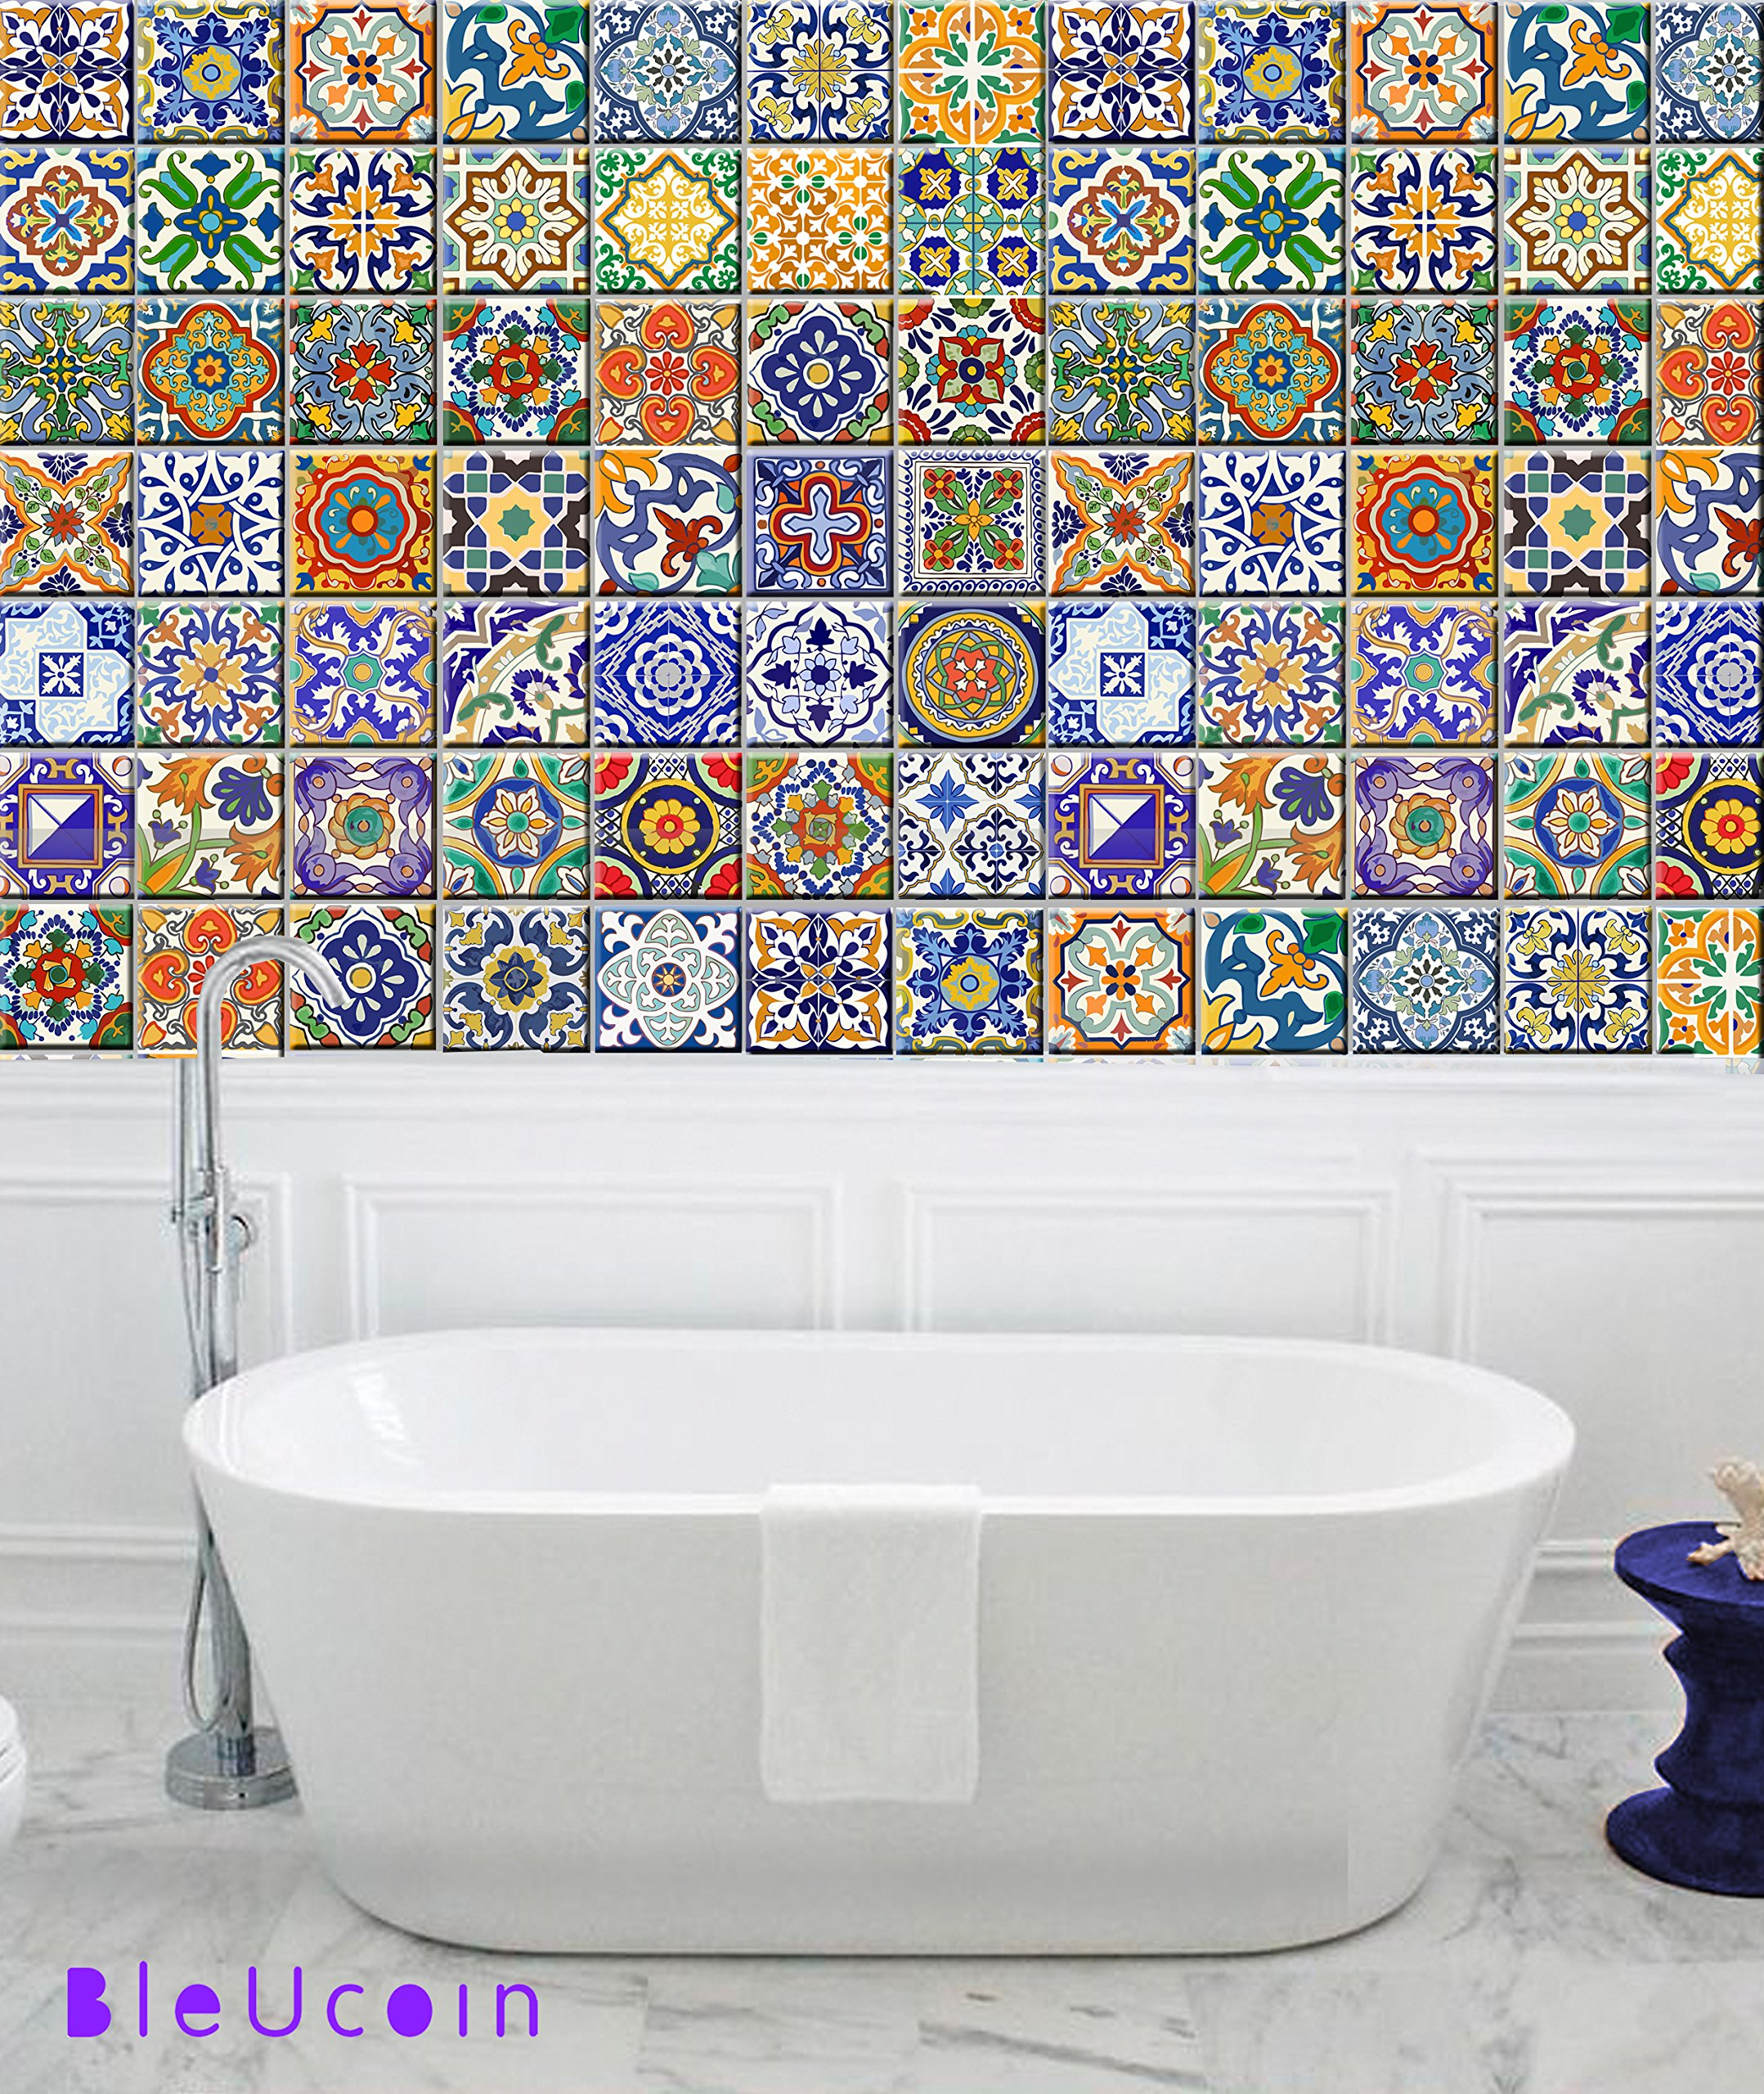 Spanish Mediterranean Talavera Tile Stickers for Kitchen Bathroom Backslash, Removable Stair Riser Decal Peel and Stick Home Decor- 44 Designs - Pack of 44 (8'' x 8'' Inches)